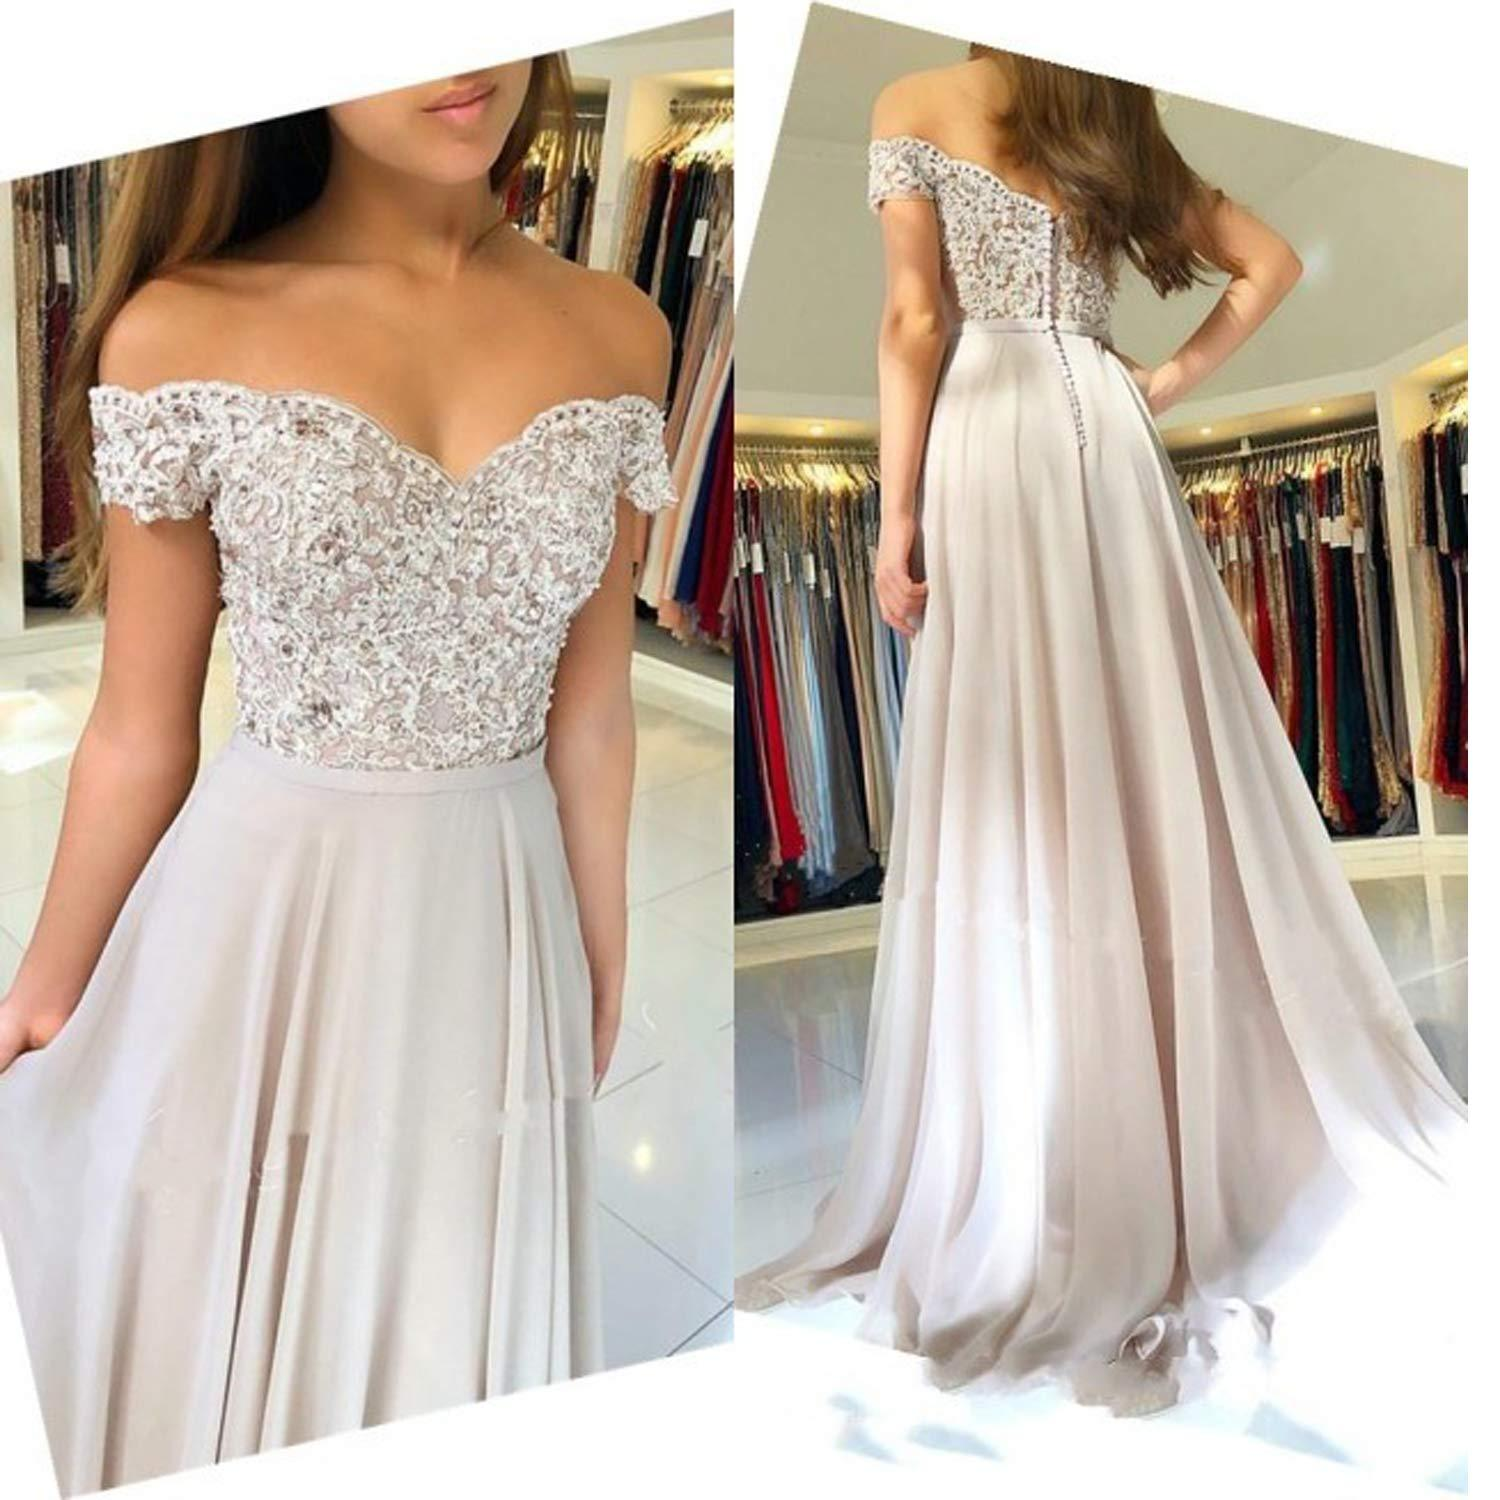 2c5fa1949f0 Off The Shoulder Prom Dresses 2019 Bead Lace Chiffon Evening Gowns Cocktail  Party Ball Bridesmaid Dress Special Occasion Formal Gown Mint Green Prom  Dresses ...